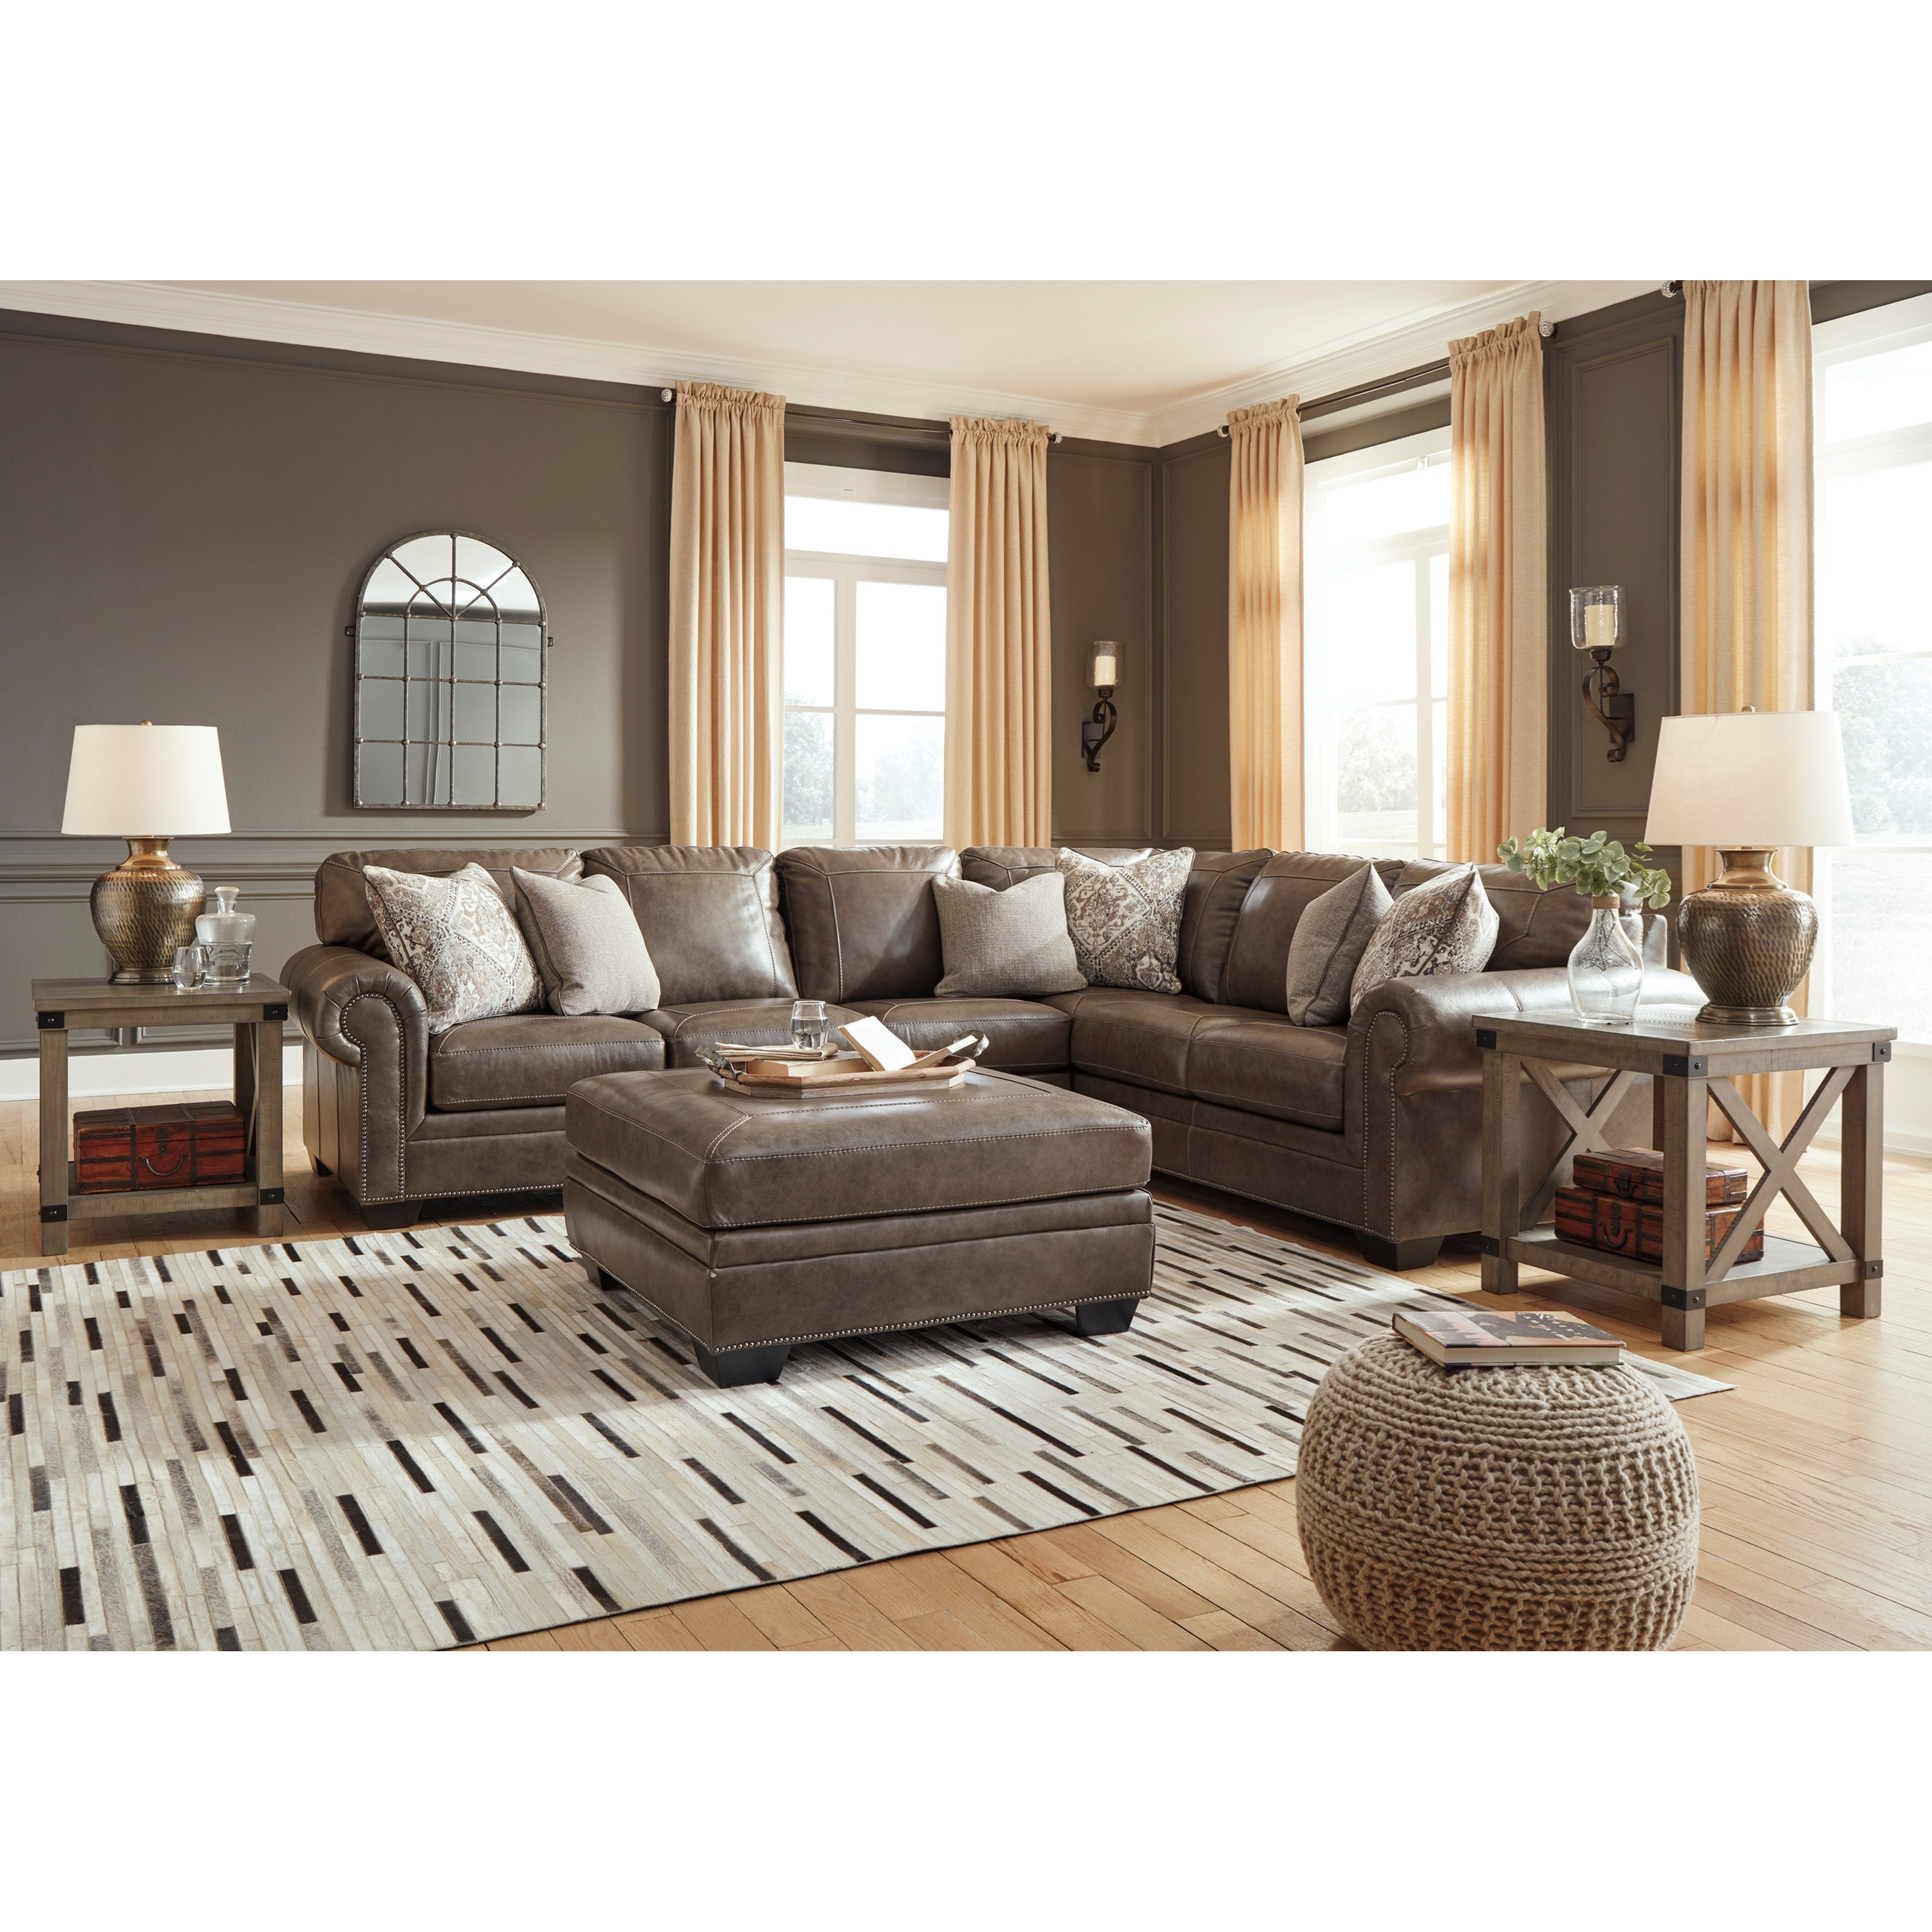 Roleson Stationary Living Room Group by Signature Design by Ashley at Zak's Warehouse Clearance Center